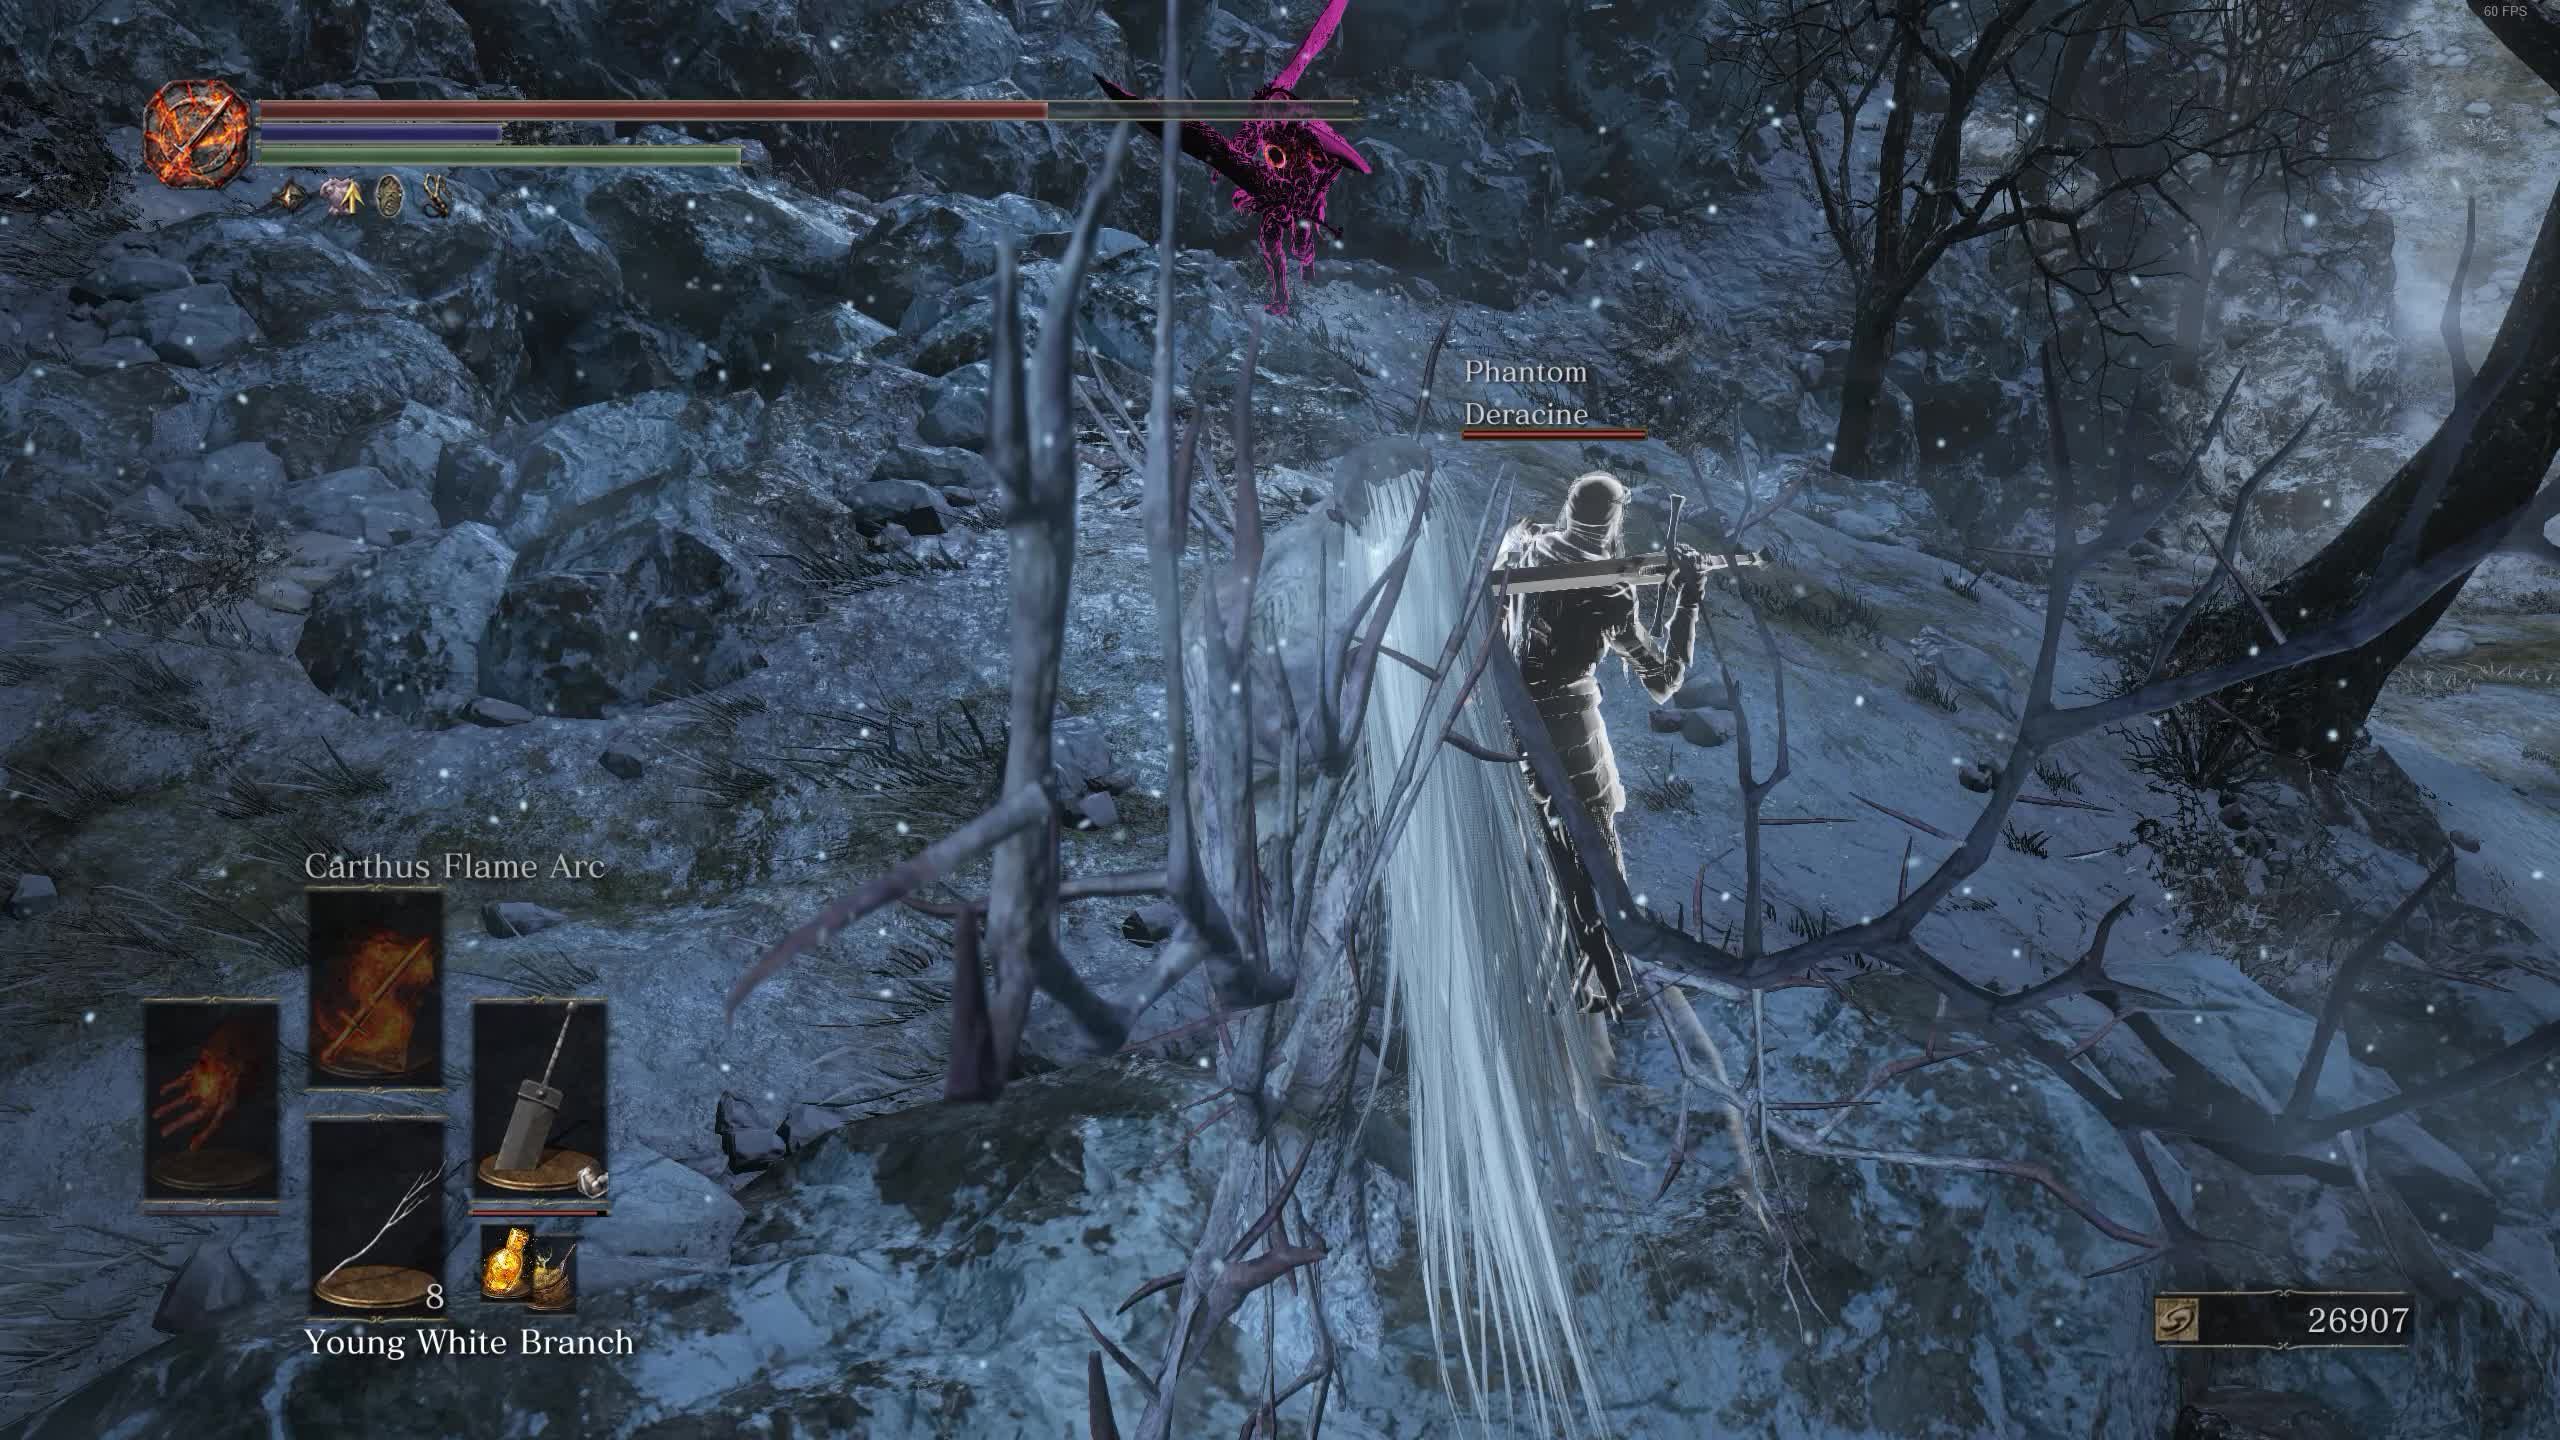 darksouls, darksouls3, ds3, pvp, Tree gank GIFs